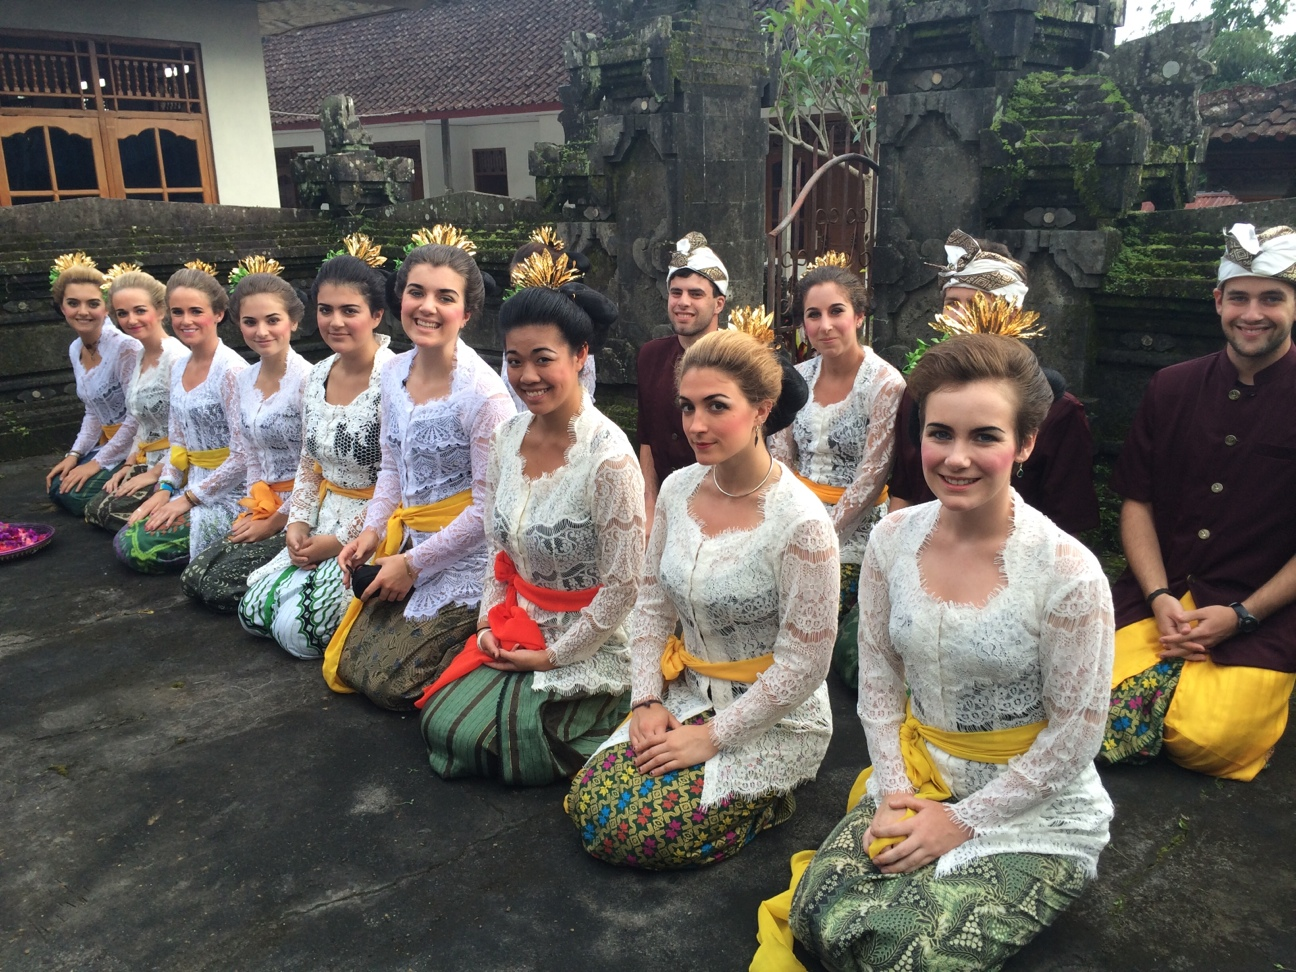 bali travel seminar group 2015